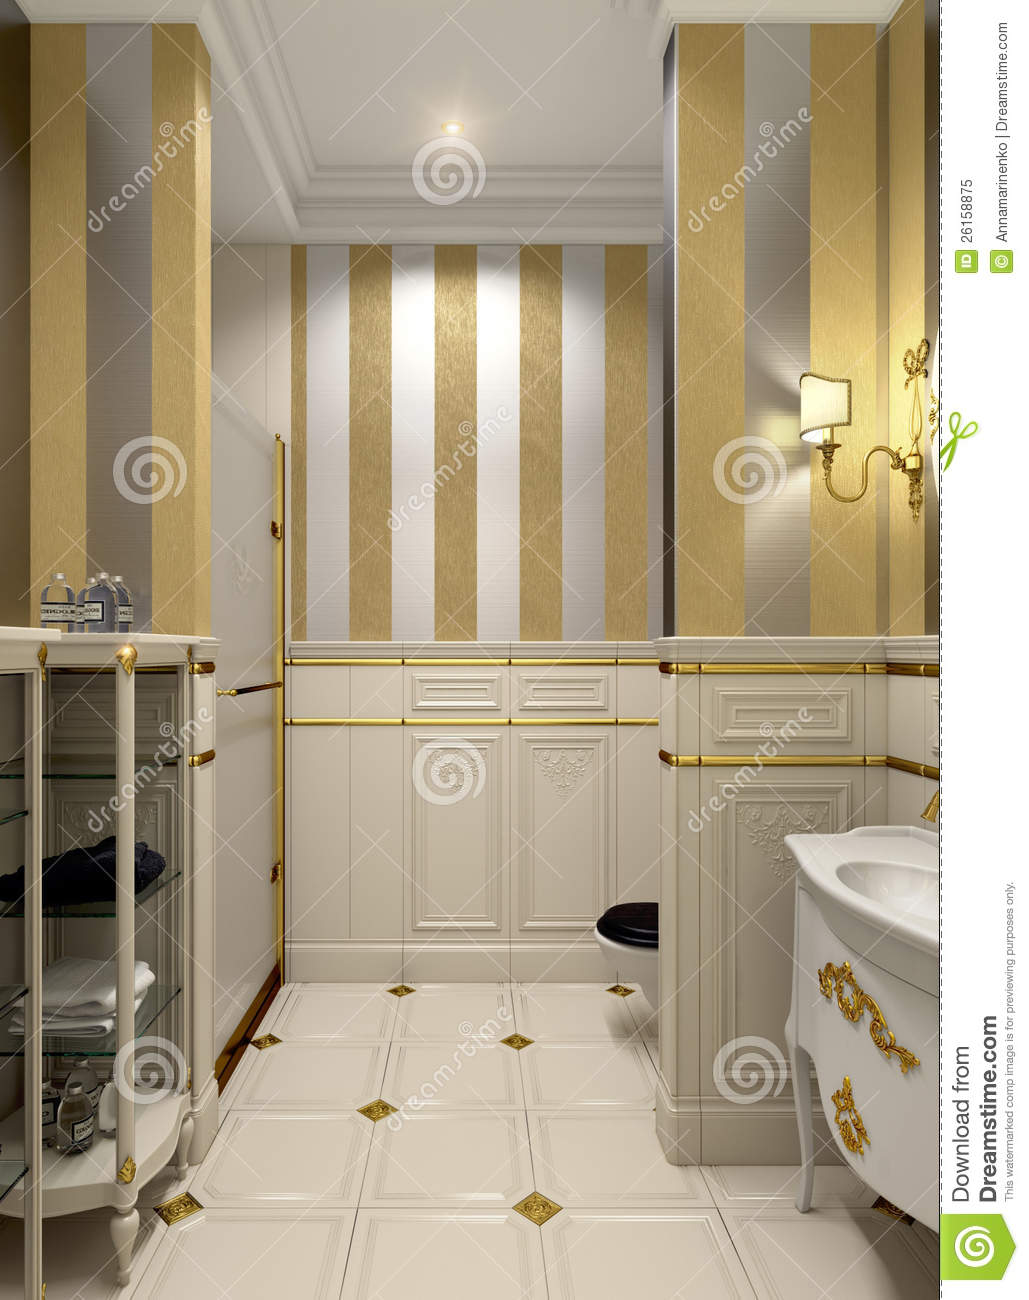 Gold Bathroom Royalty Free Stock Photo Image 26158875